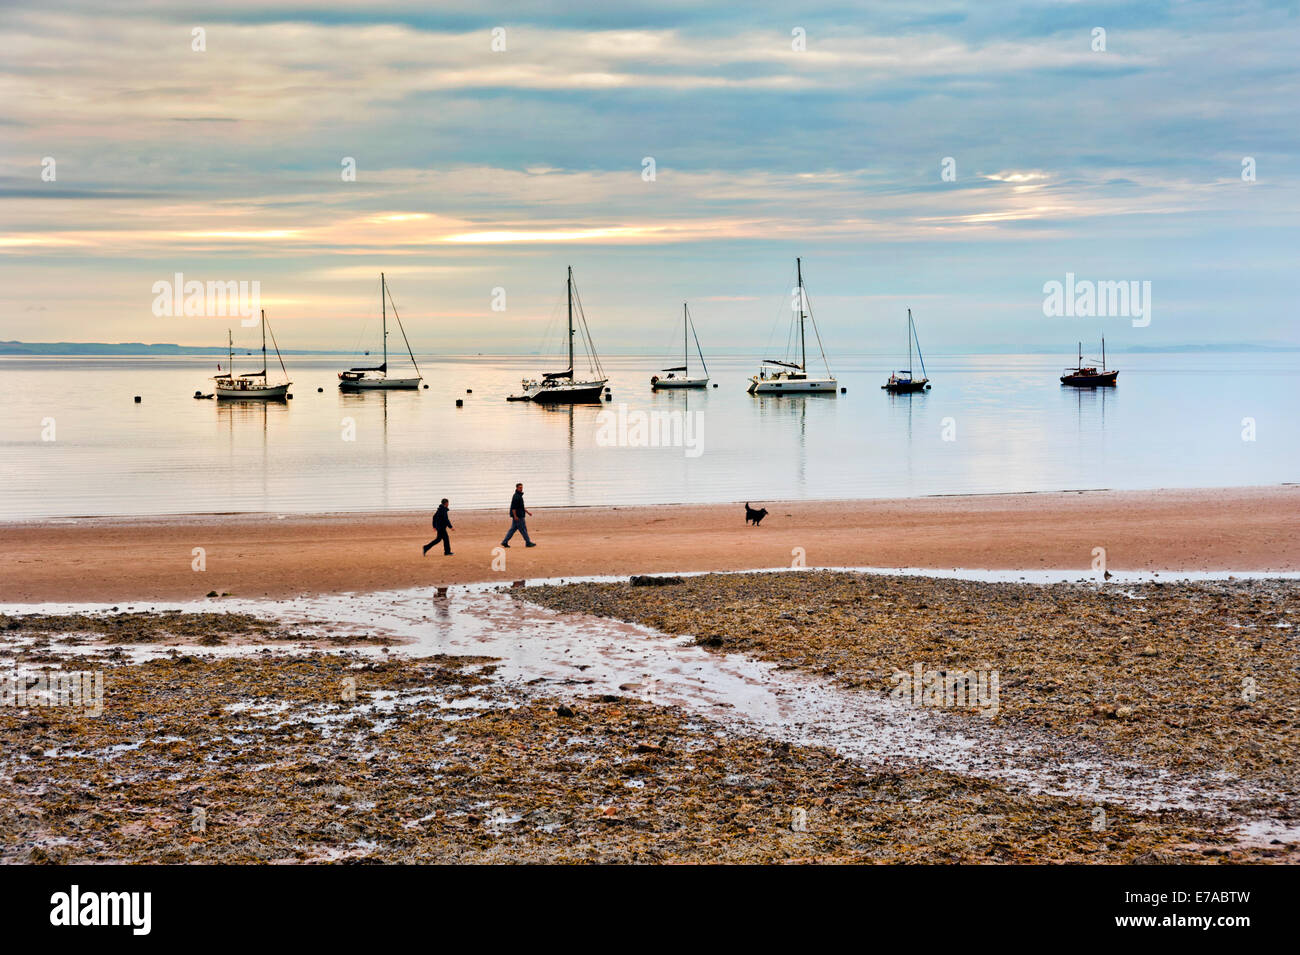 Early morning on the beach at Brodrick, Isle of Arran, Scotland, with dog walkers. - Stock Image